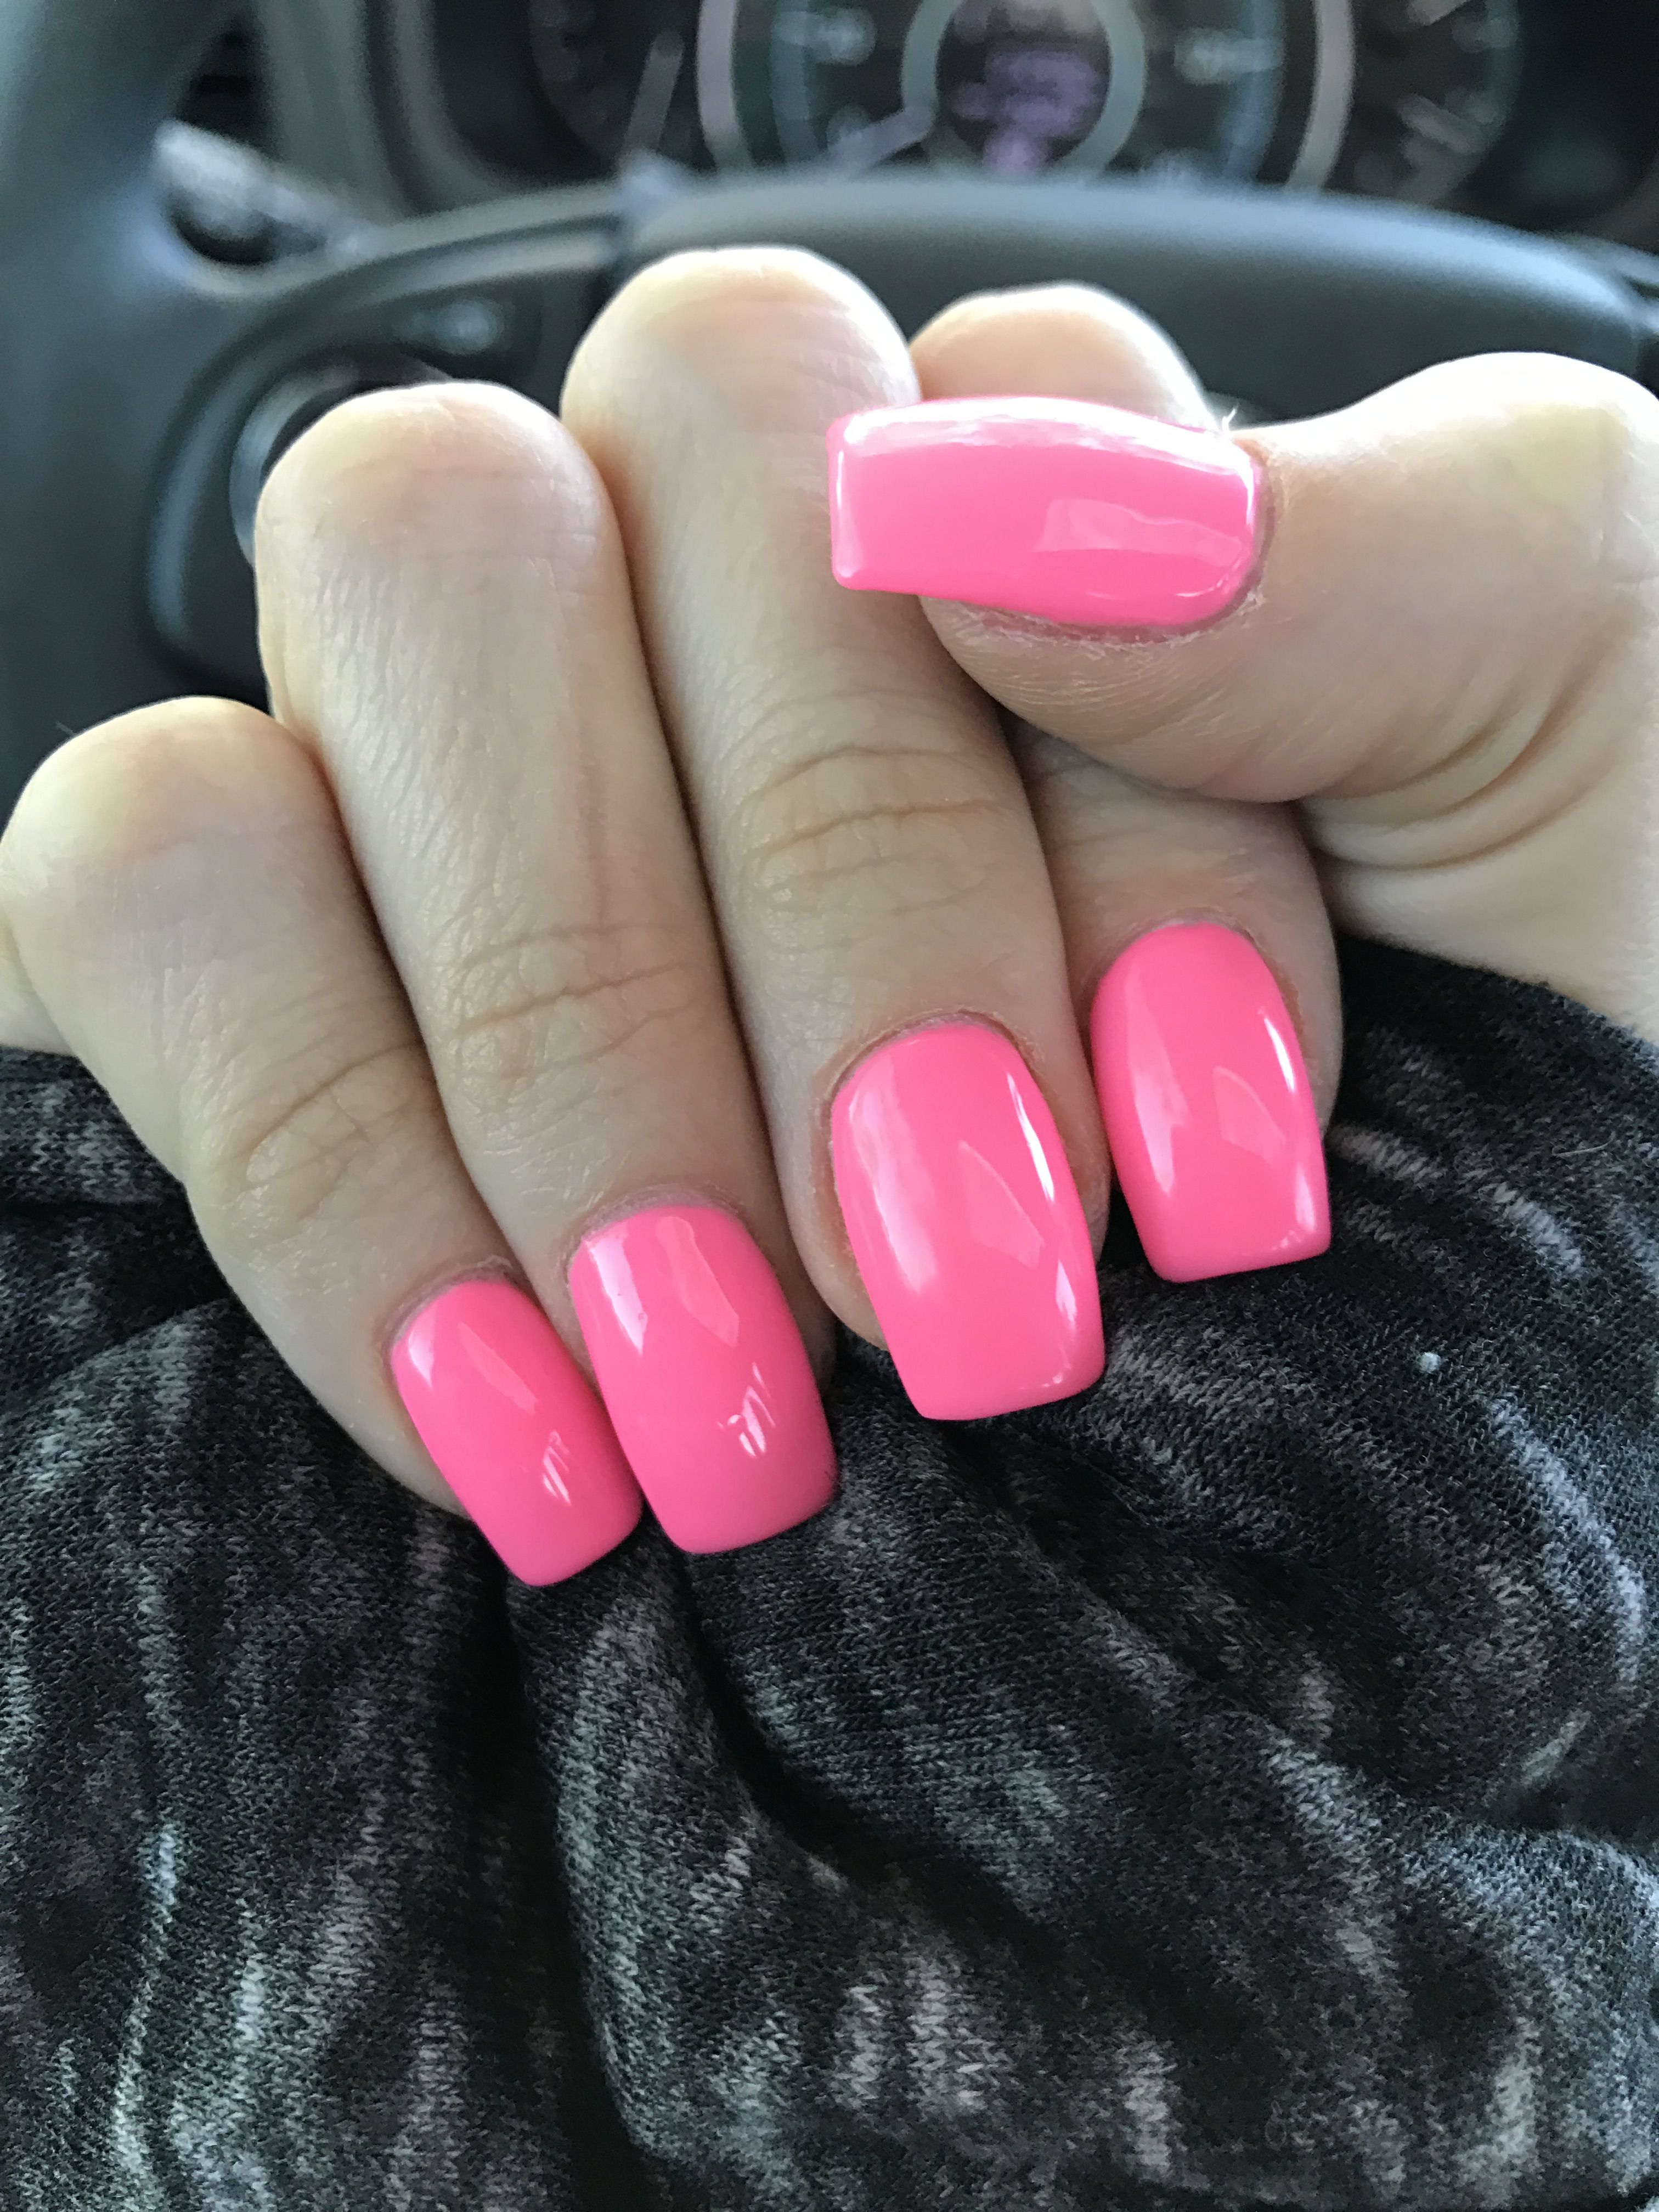 Pretty in pink acrylic nails (With images) | Pink acrylic